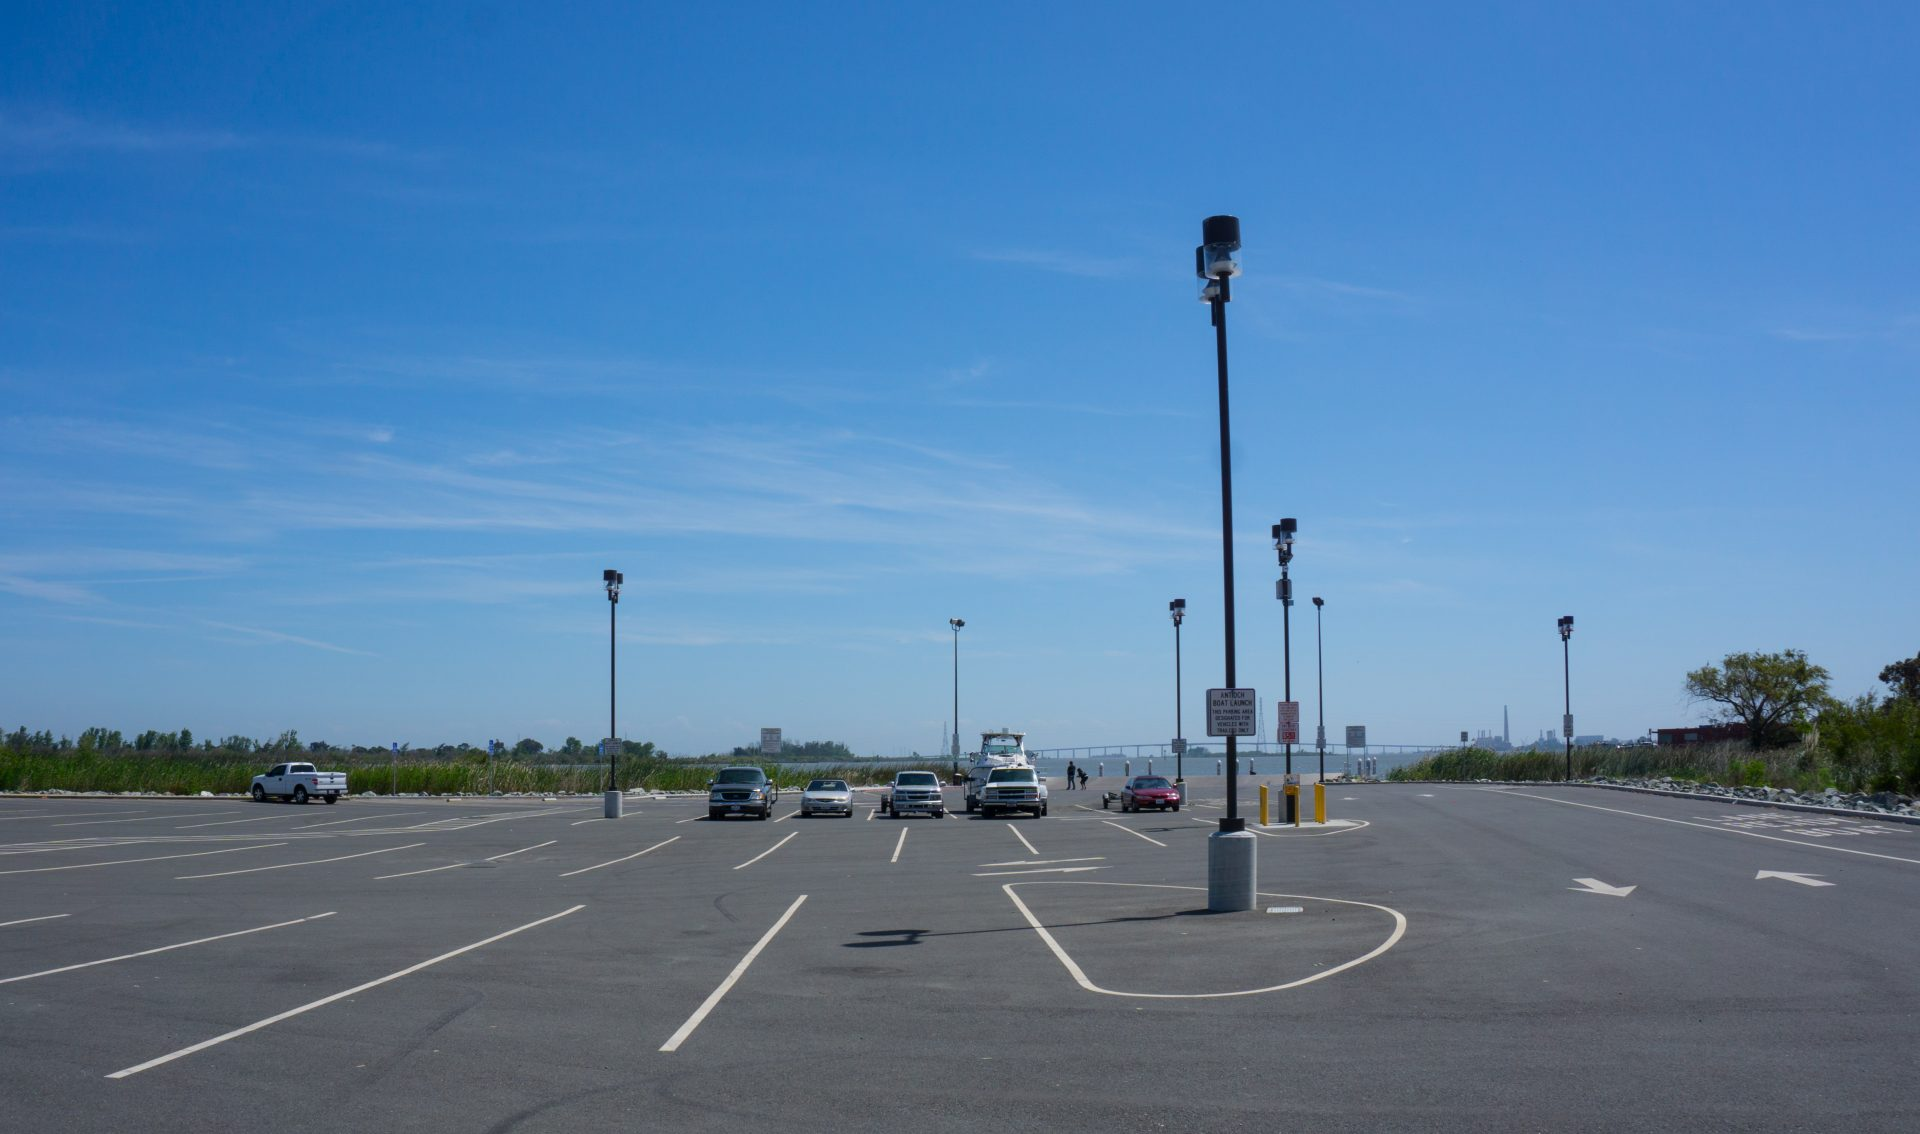 empty parking lot with lights